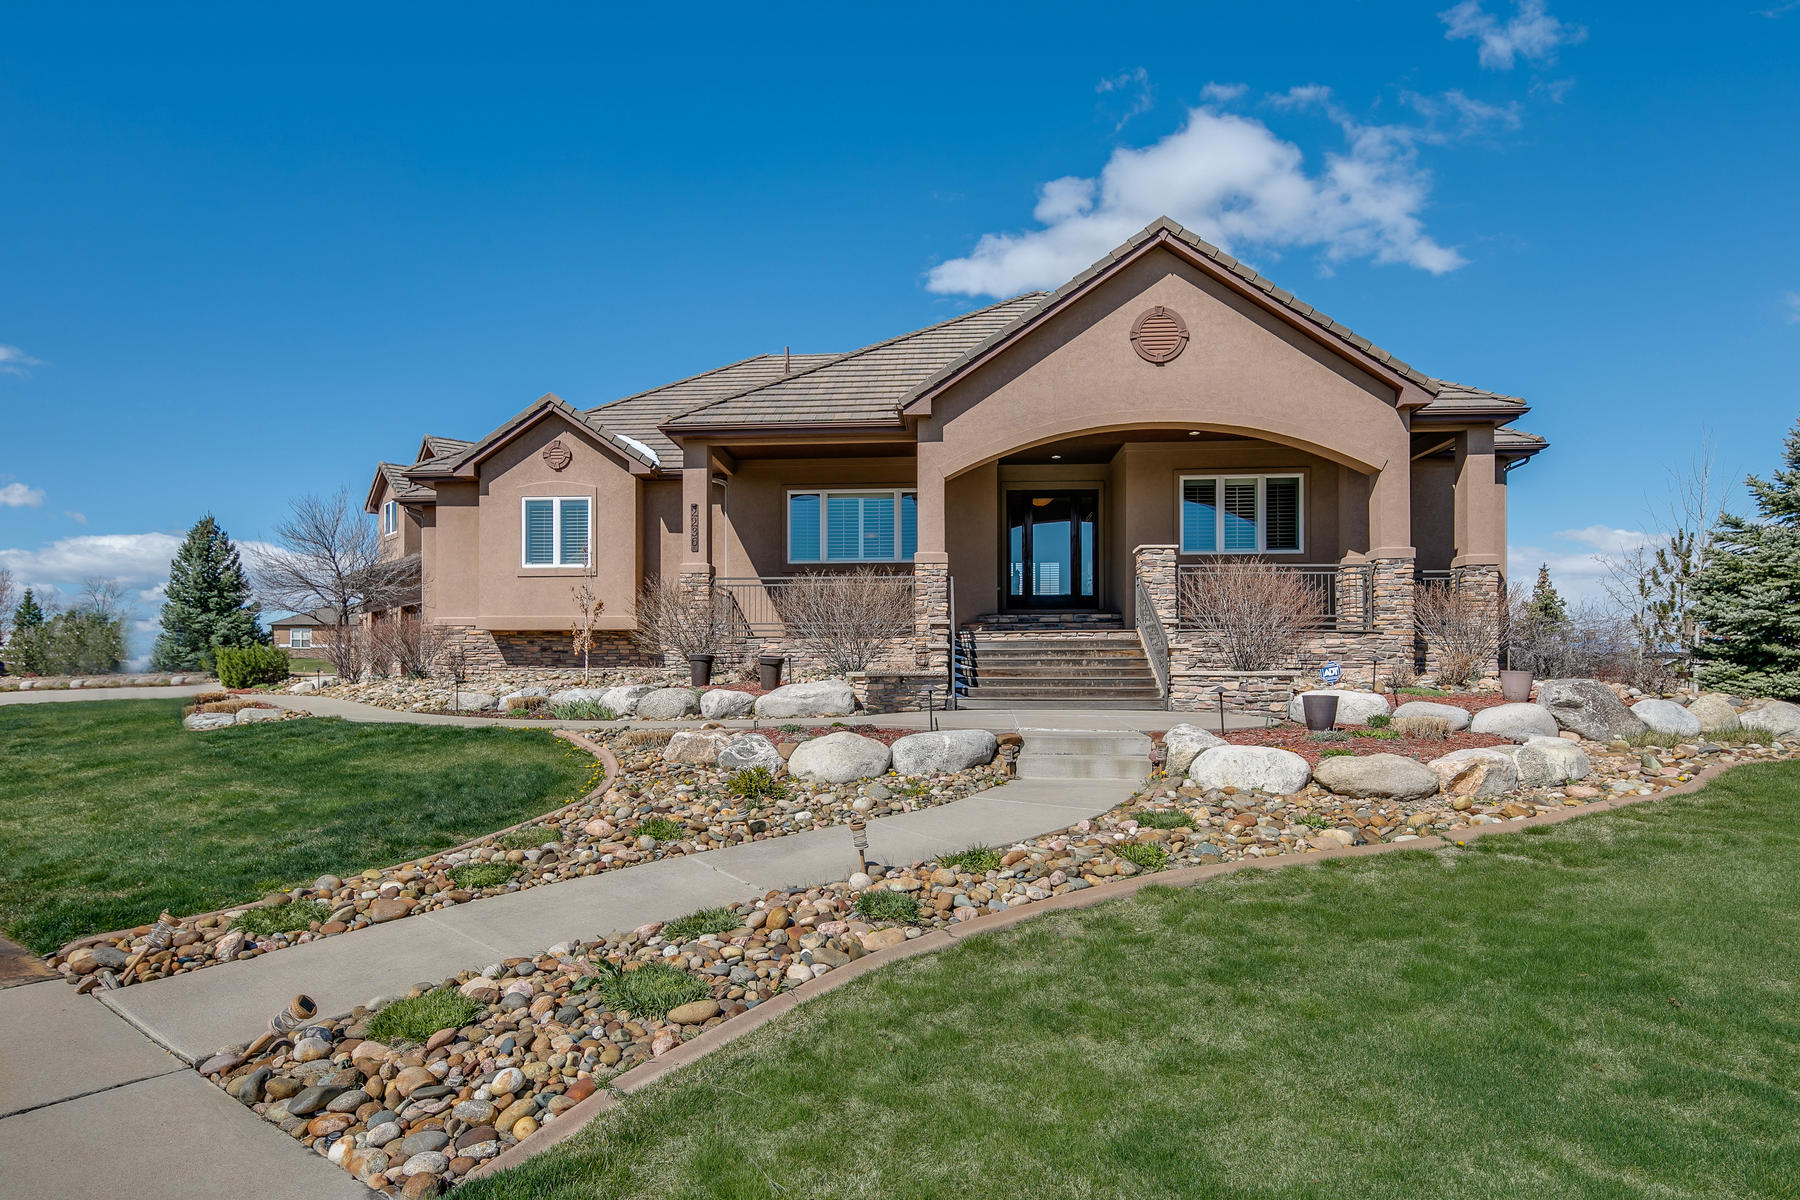 Single Family Homes for Sale at Sweeping Mountain Views 2236 Driver Ln, Erie, Colorado 80516 United States